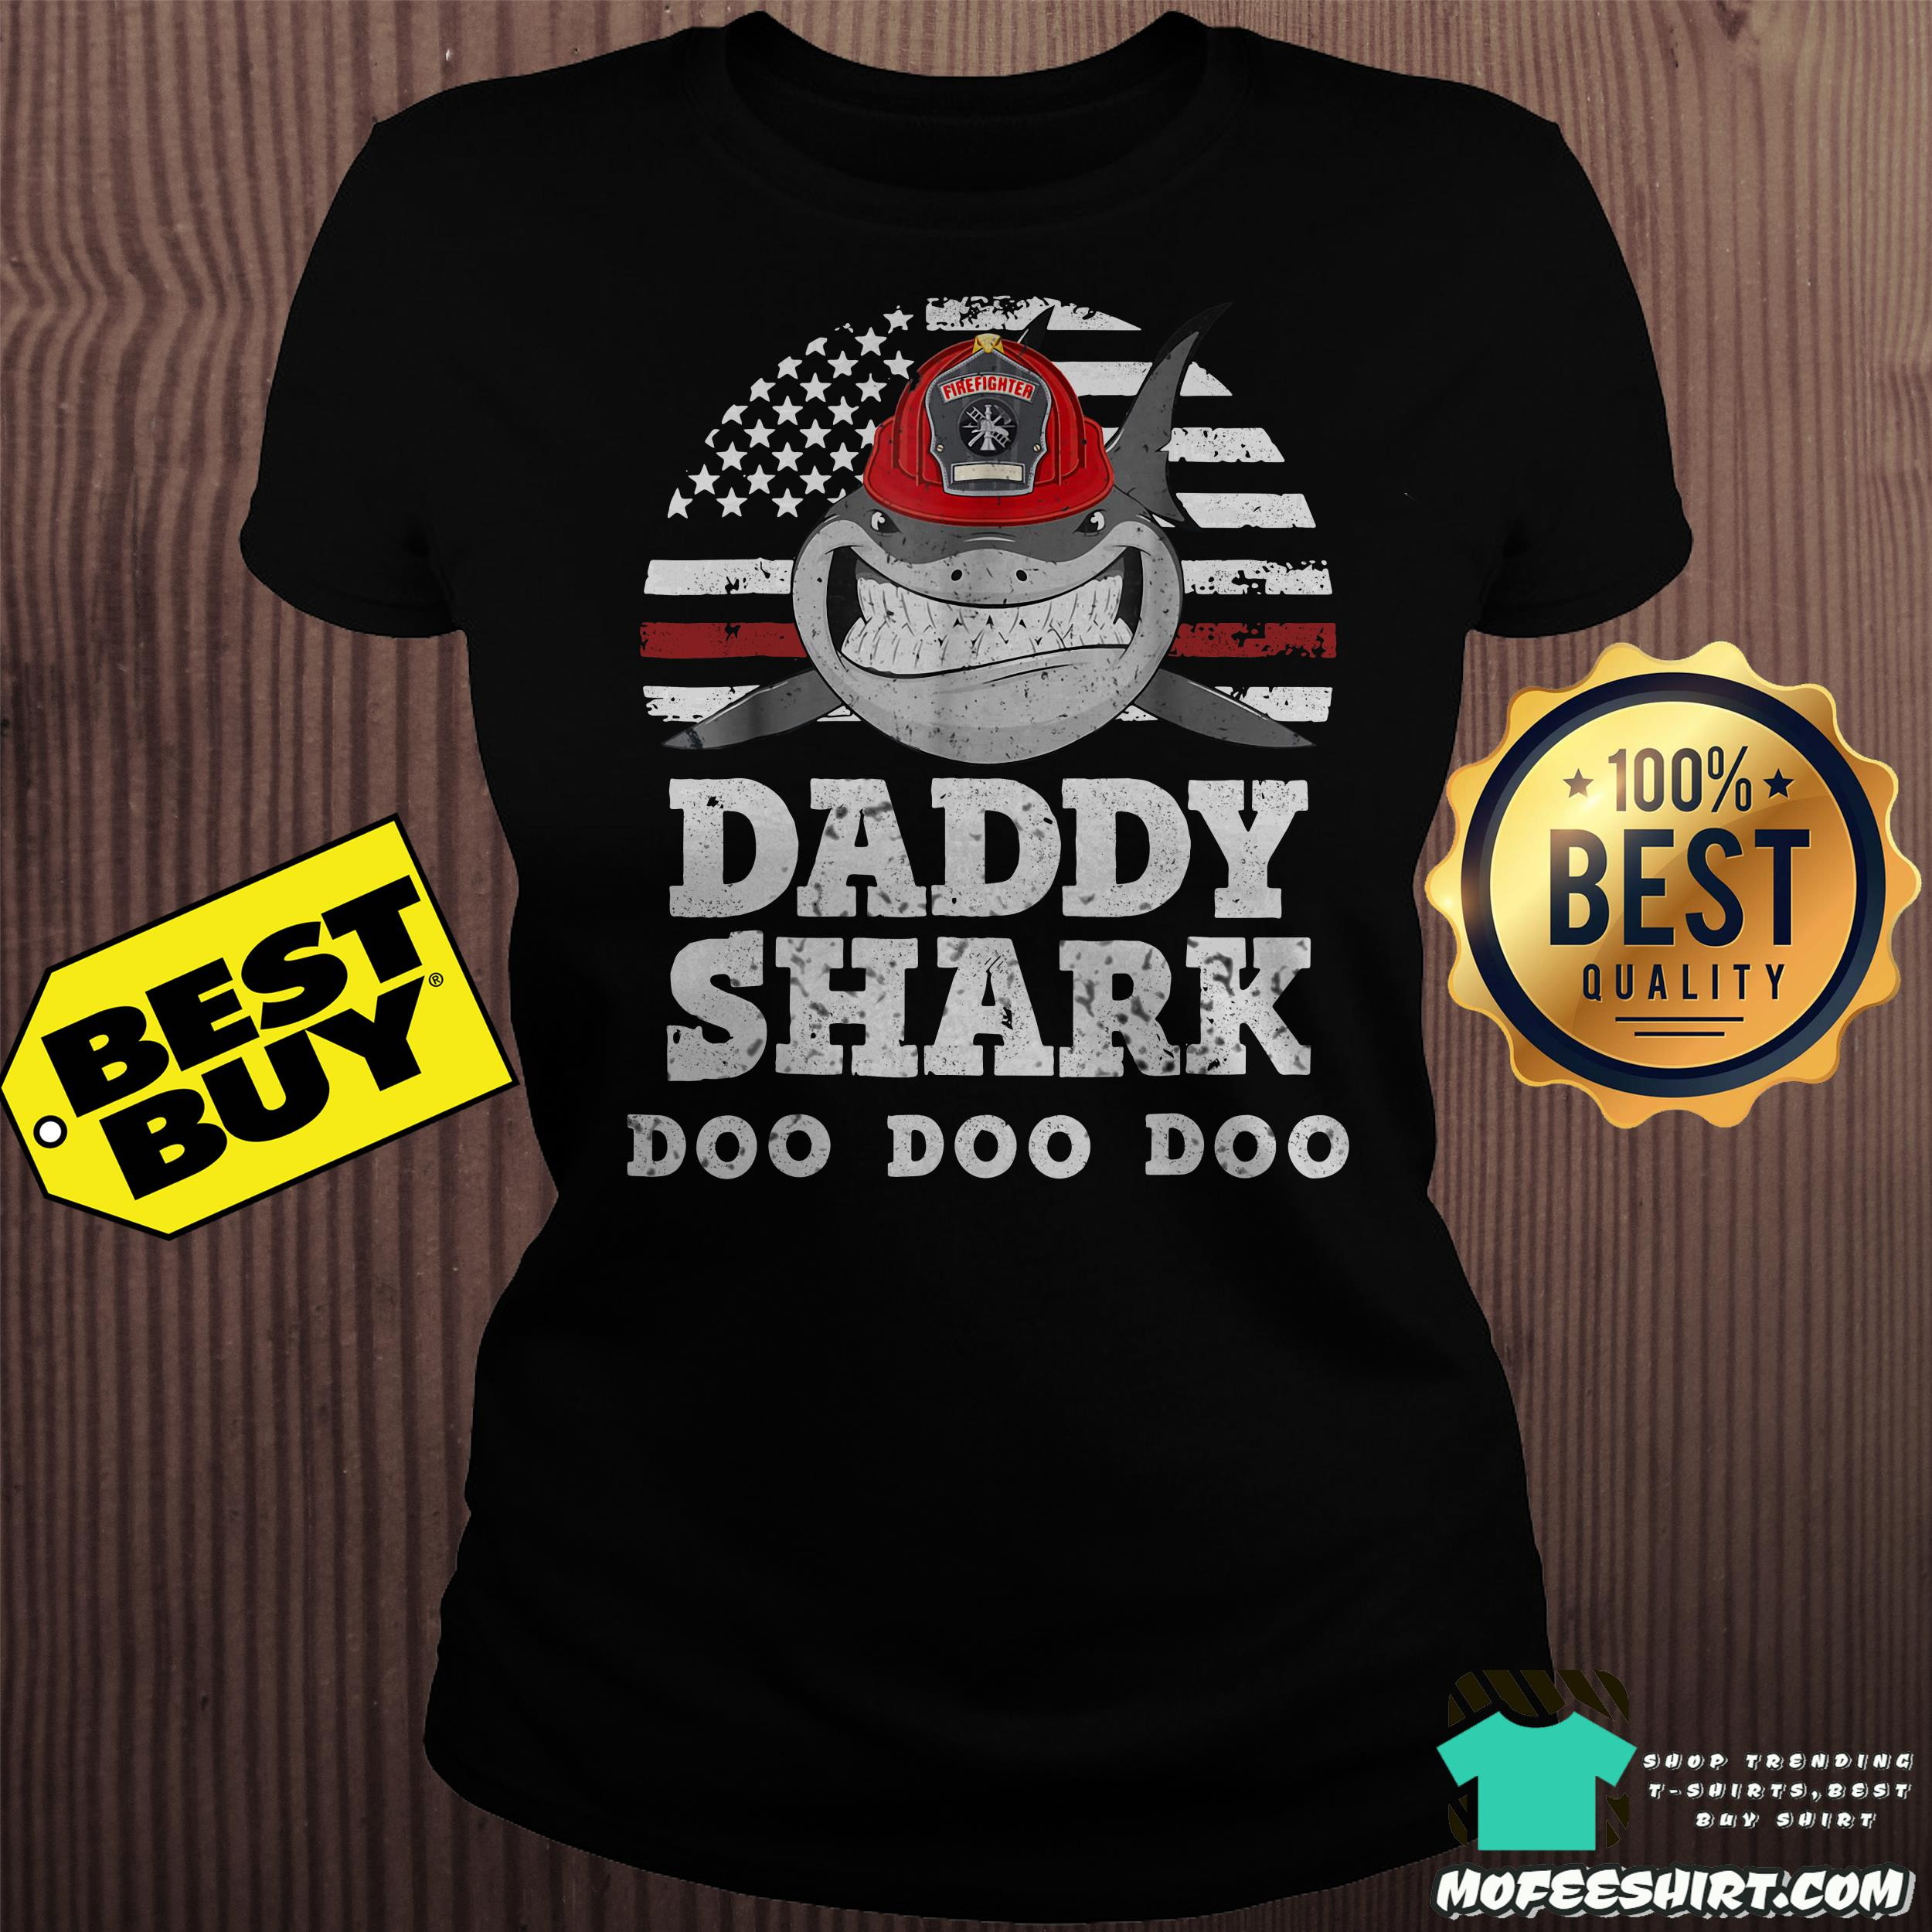 firefighter daddy shark doo doo doo vintage ladies tee - Firefighter daddy shark doo doo doo vintage shirt